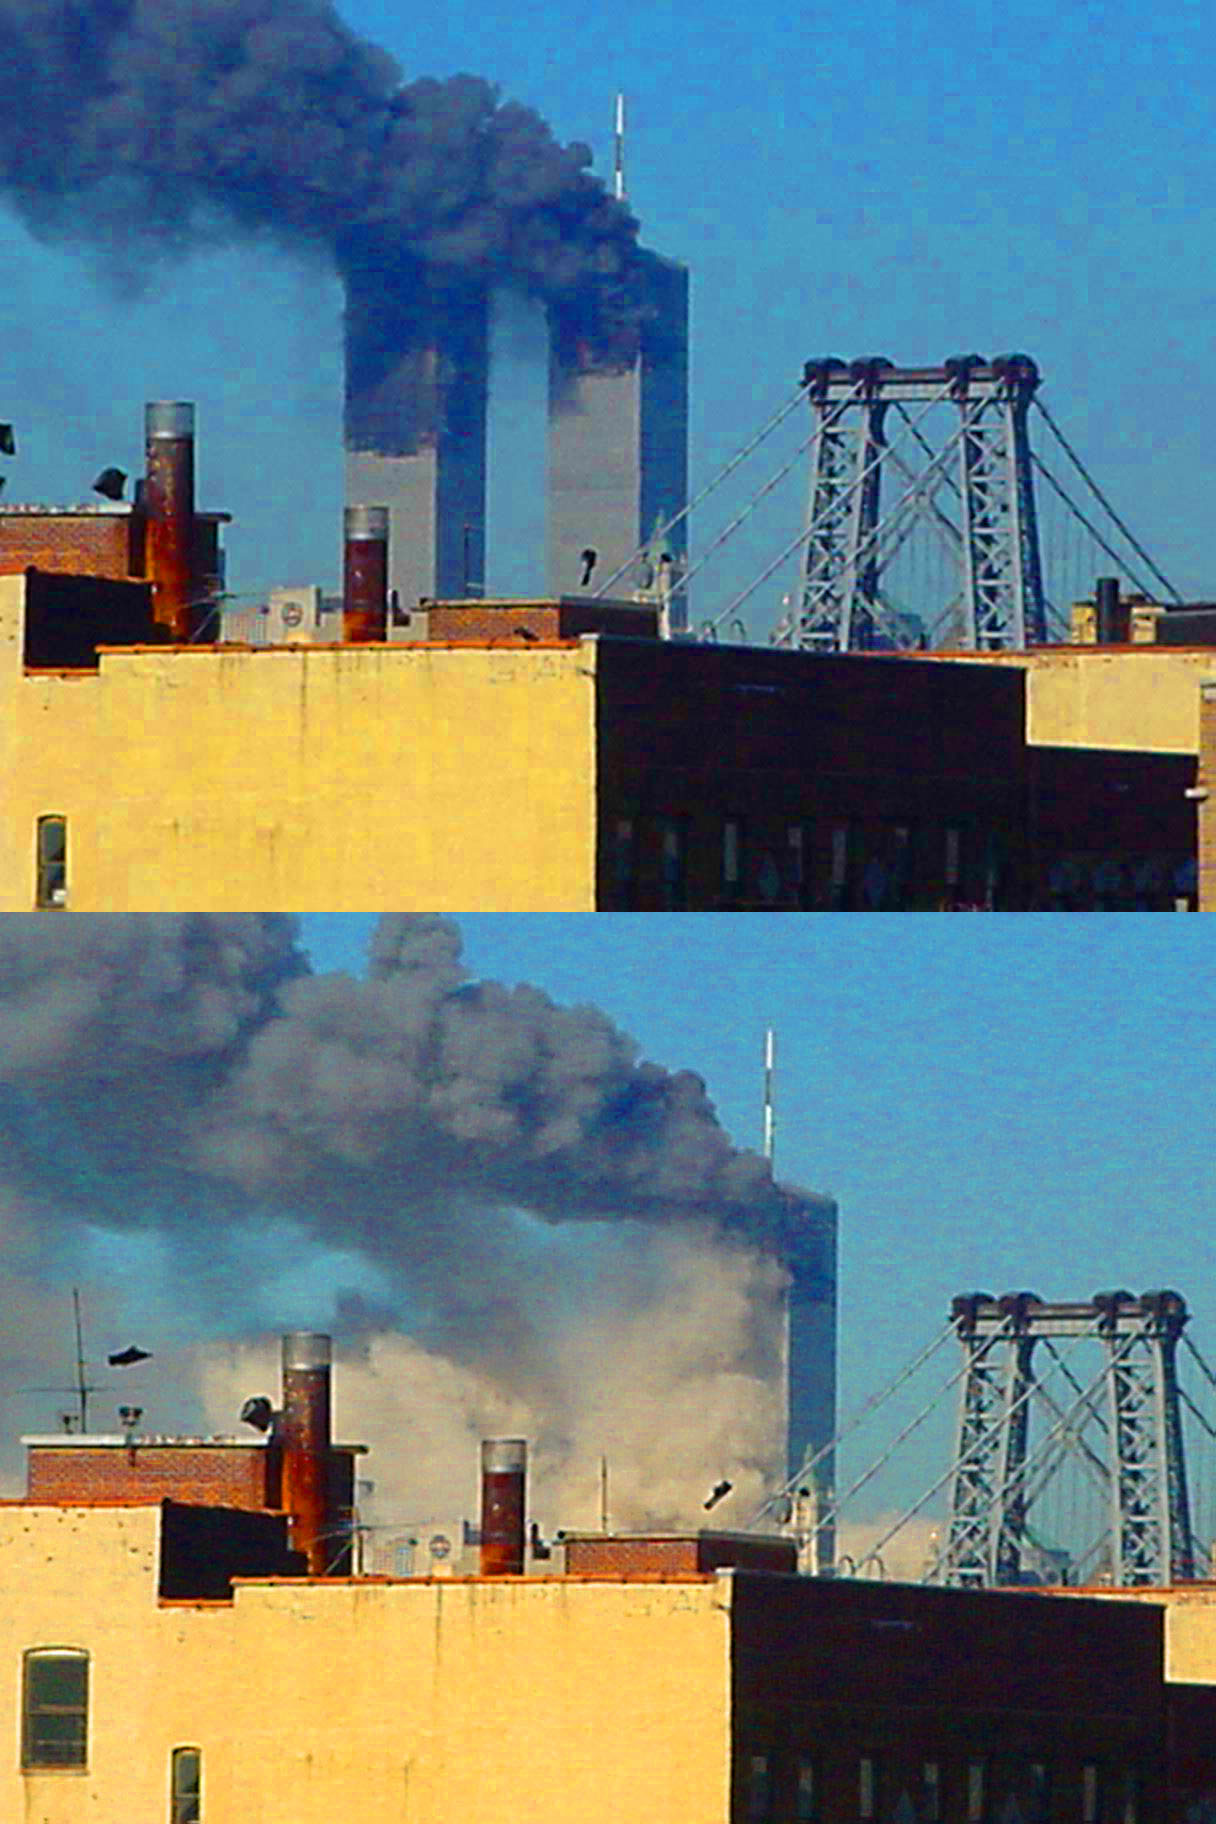 Collapse of 2 World Trade Center seen from Williamsburg, Brooklyn. (Pauljoffe, CC BY-SA 3.0, Wikimedia Commons)